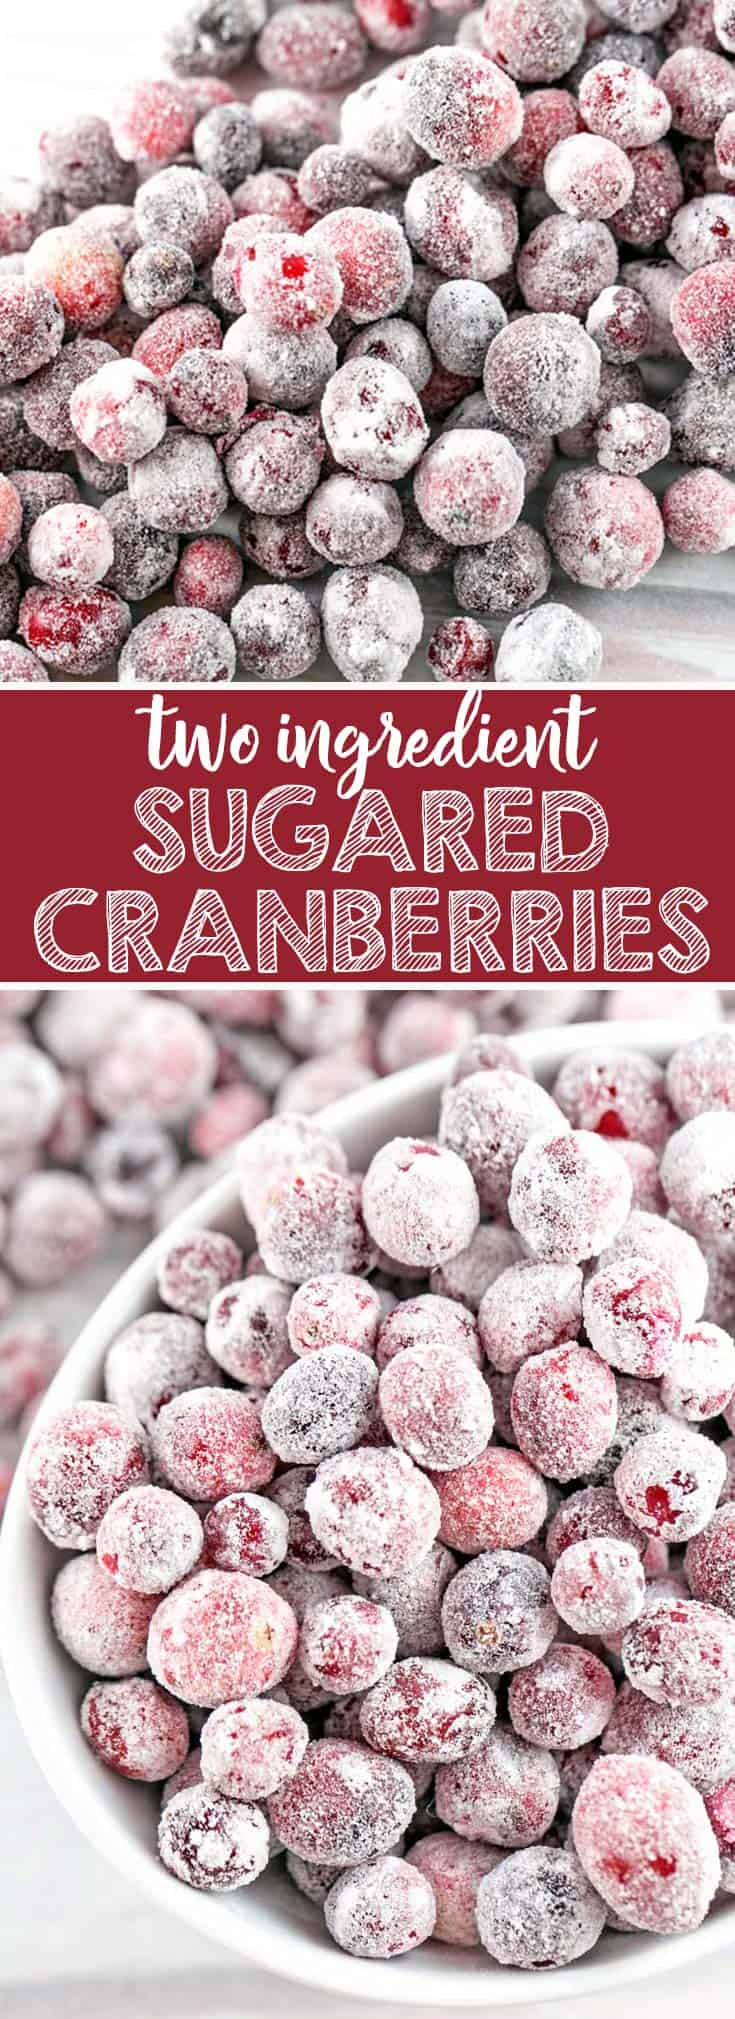 Sugared Cranberries: these two ingredient sweet-tart sugared cranberries are the perfect accompaniment to fancy desserts, charcuterie and cheese boards, or holiday snacking. {Bunsen Burner Bakery} #cranberries #sugaredcranberries #holiday #christmas